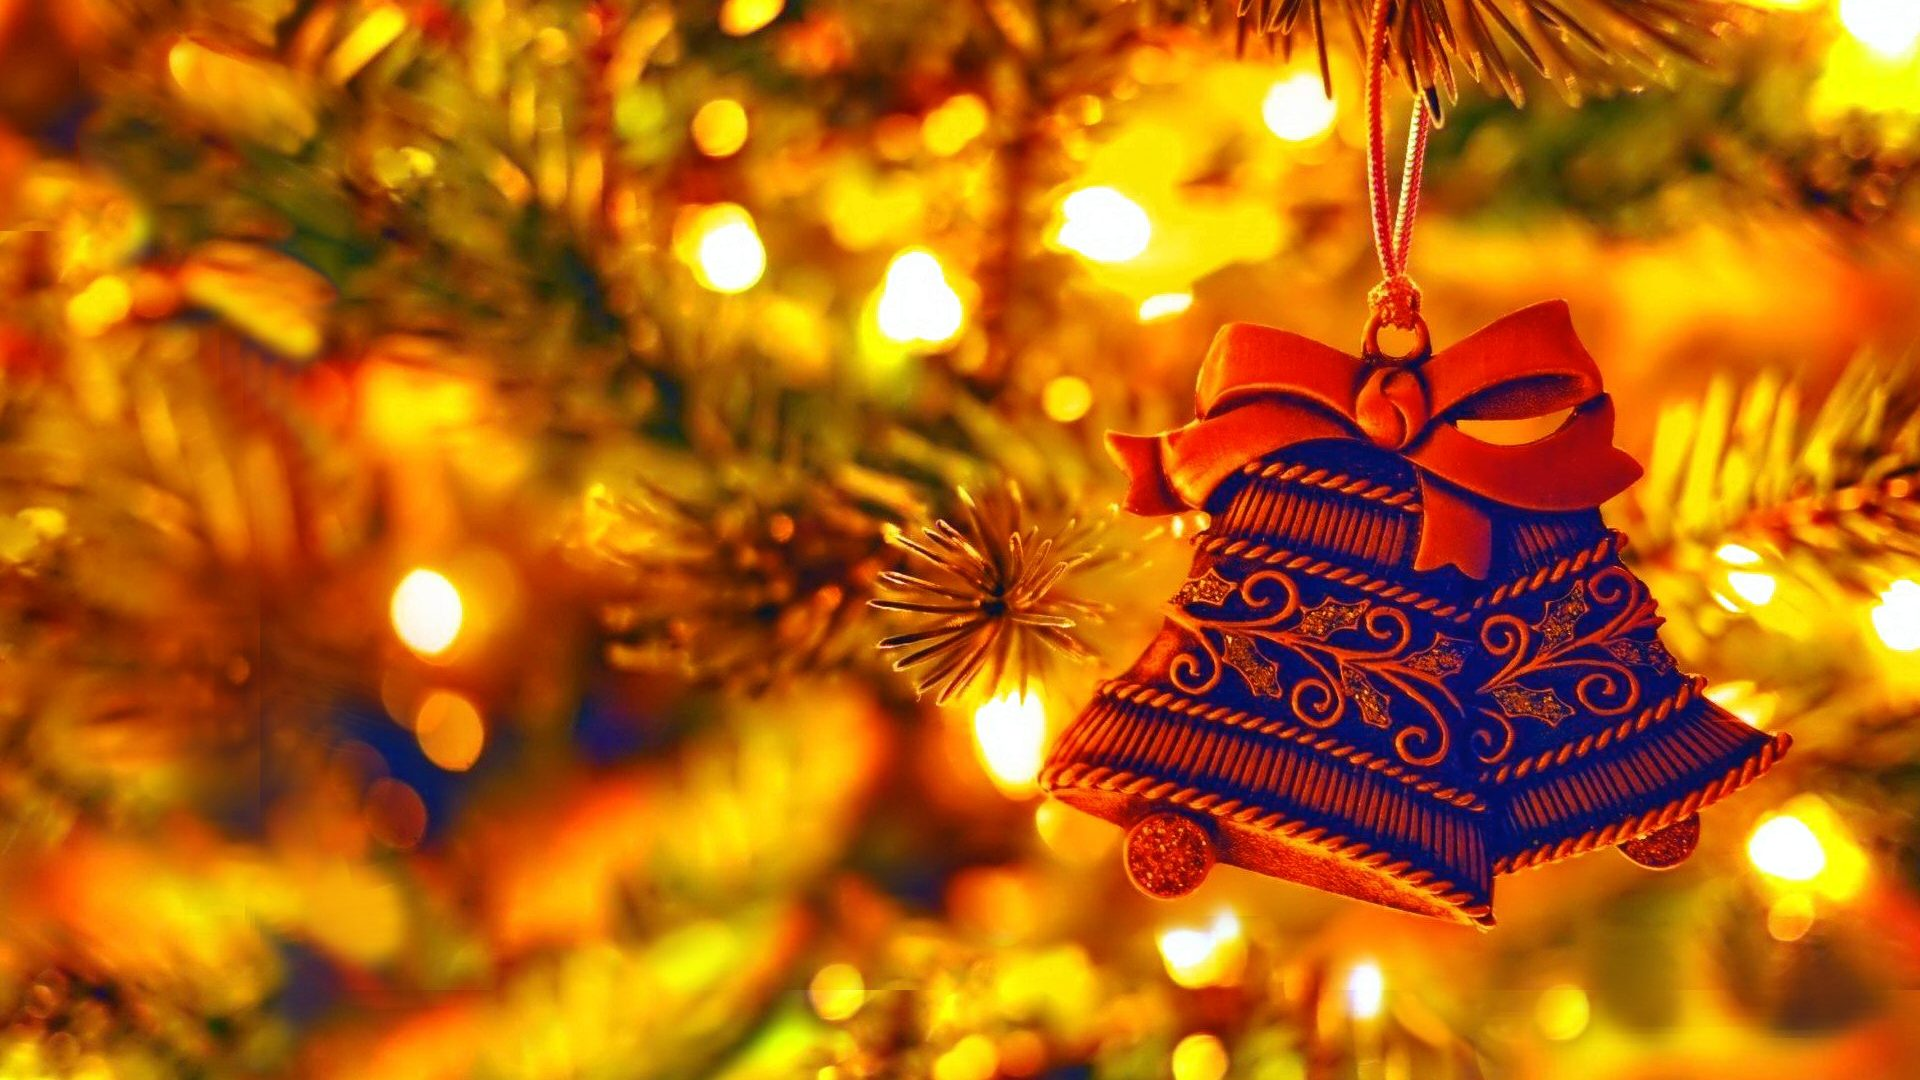 4k christmas decorations wallpapers high quality | download free